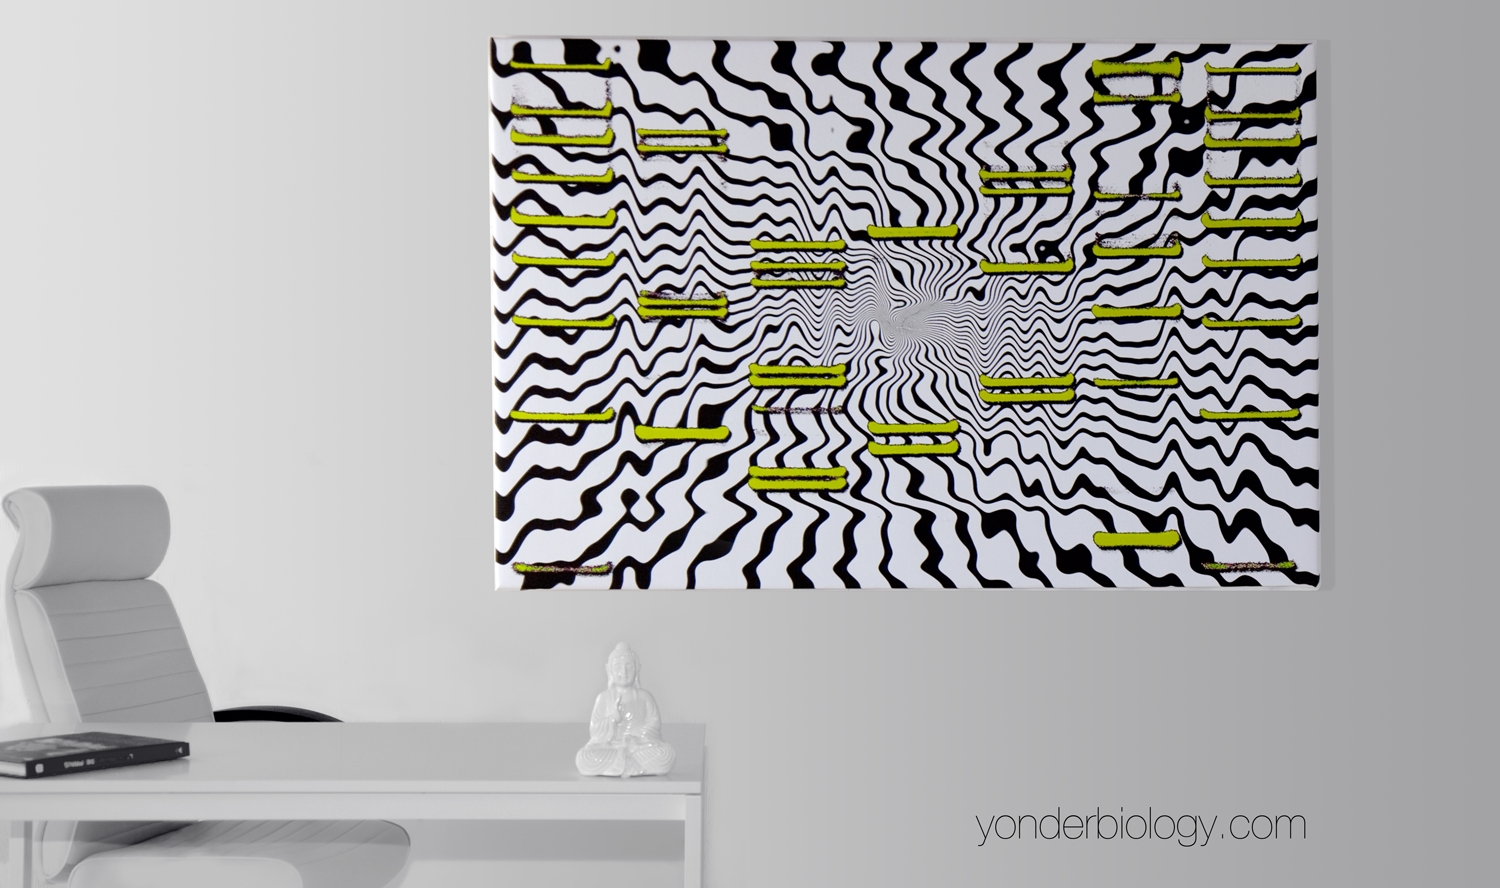 Yonder Launches Neon Dna Art Collection In Dna Wall Art (View 13 of 20)